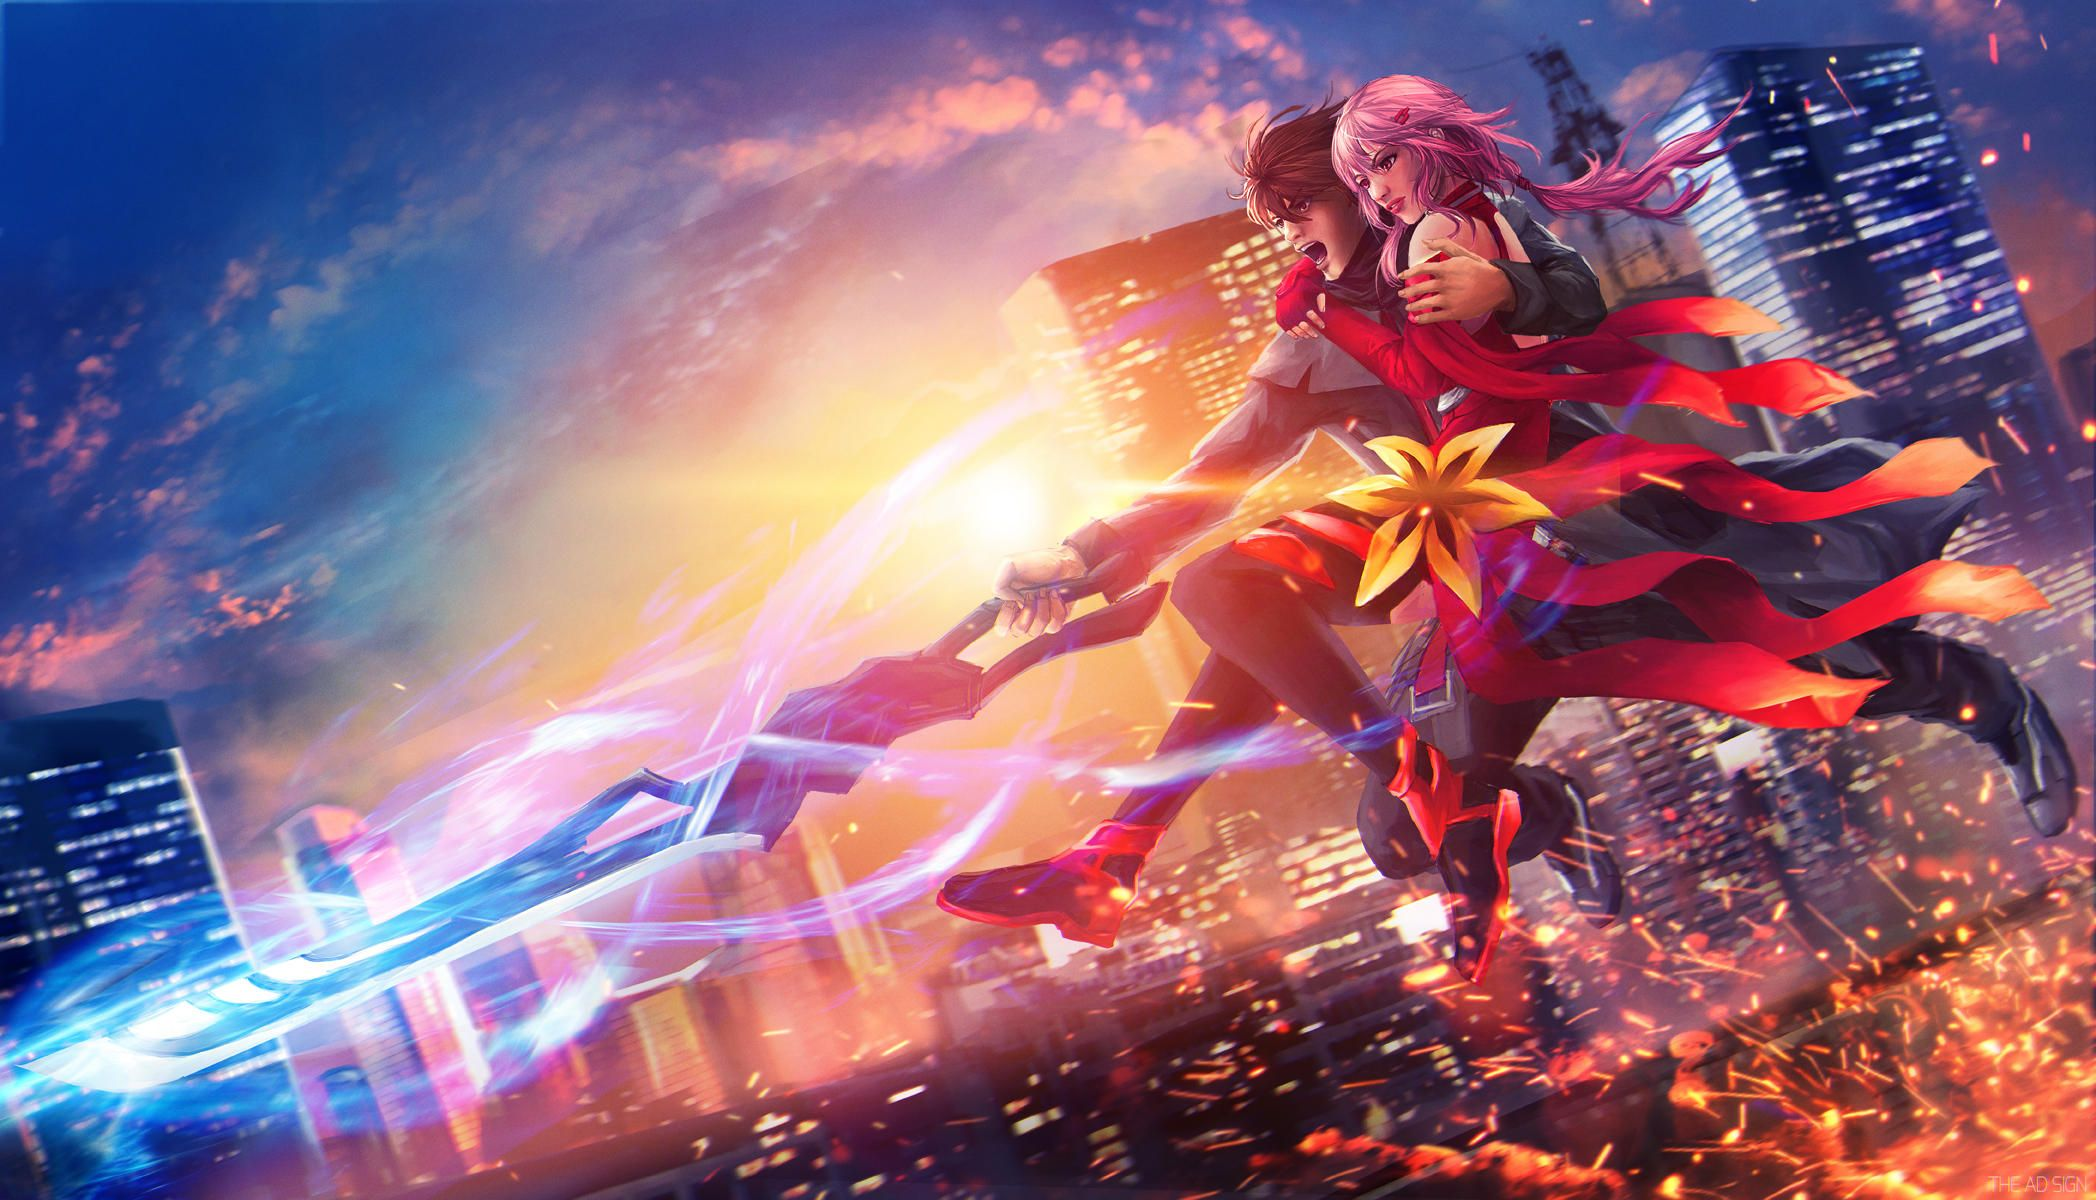 Guilty Crown Wallpapers Top Free Guilty Crown Backgrounds Wallpaperaccess